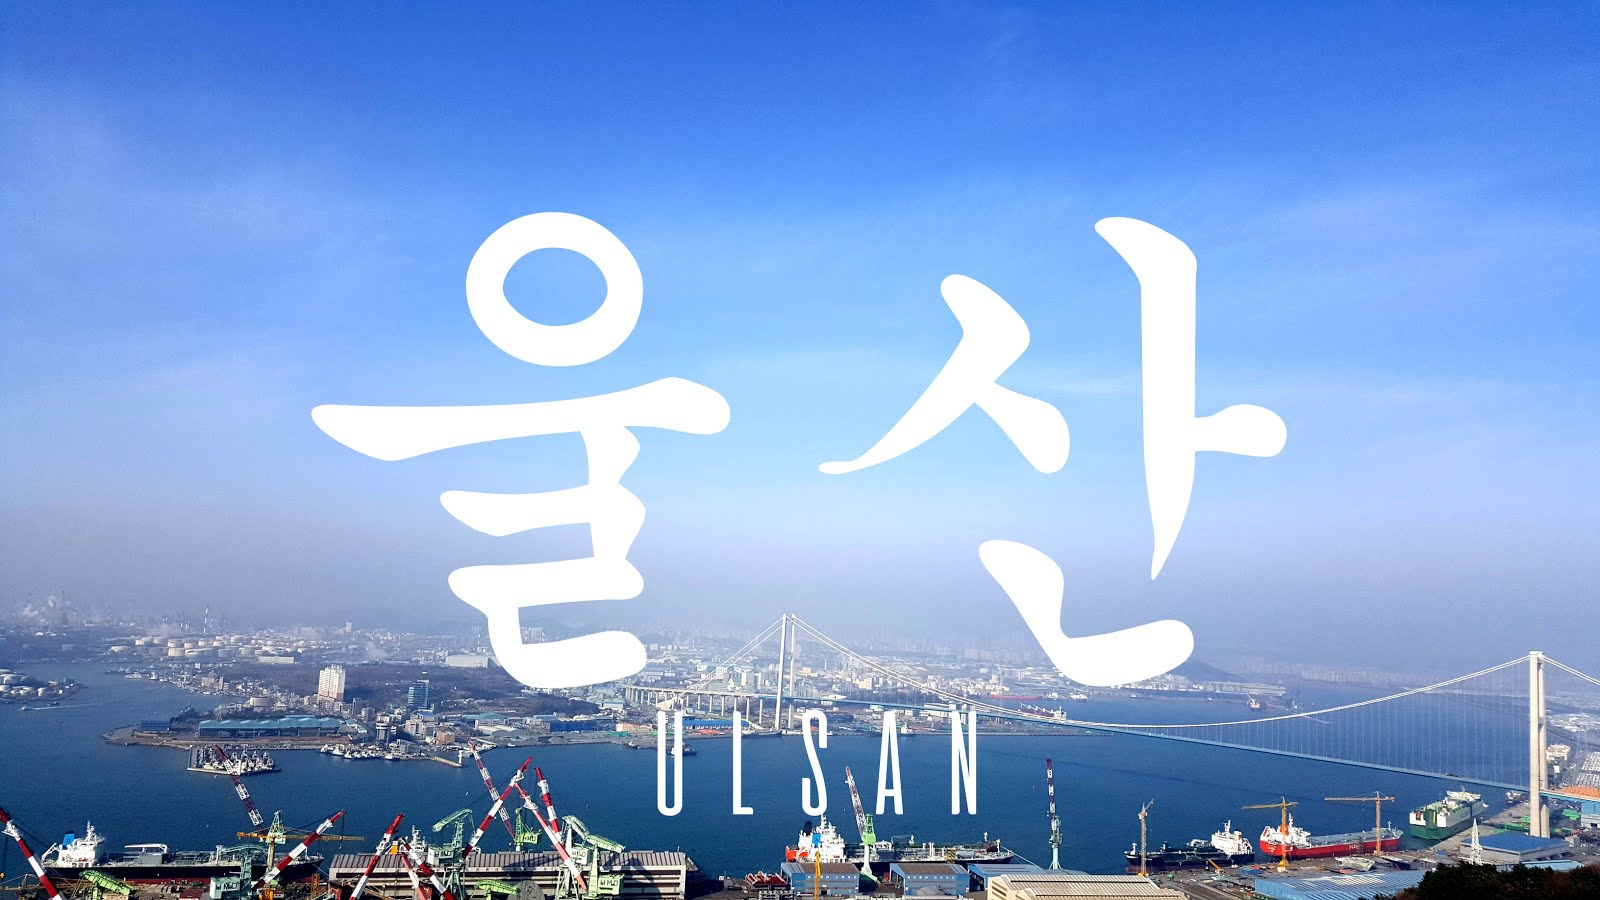 ulsan itinerary